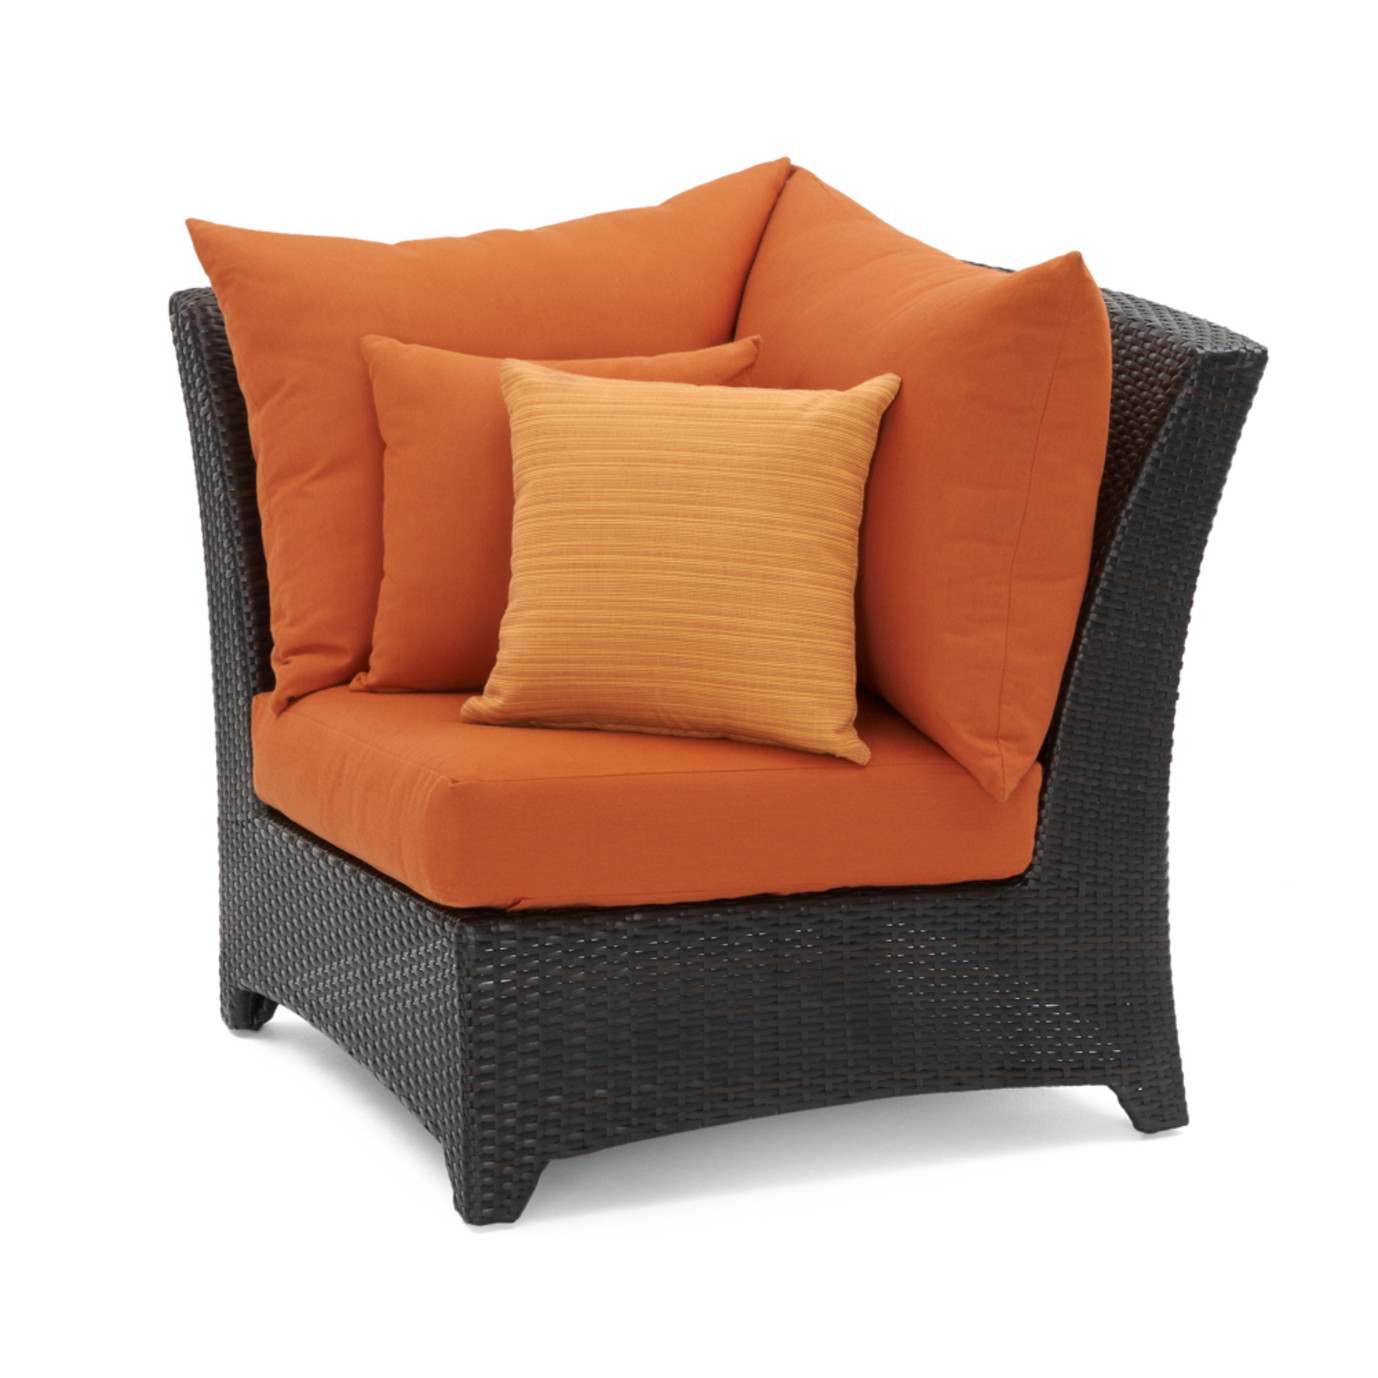 Deco™ Corner Chair - Tikka Orange